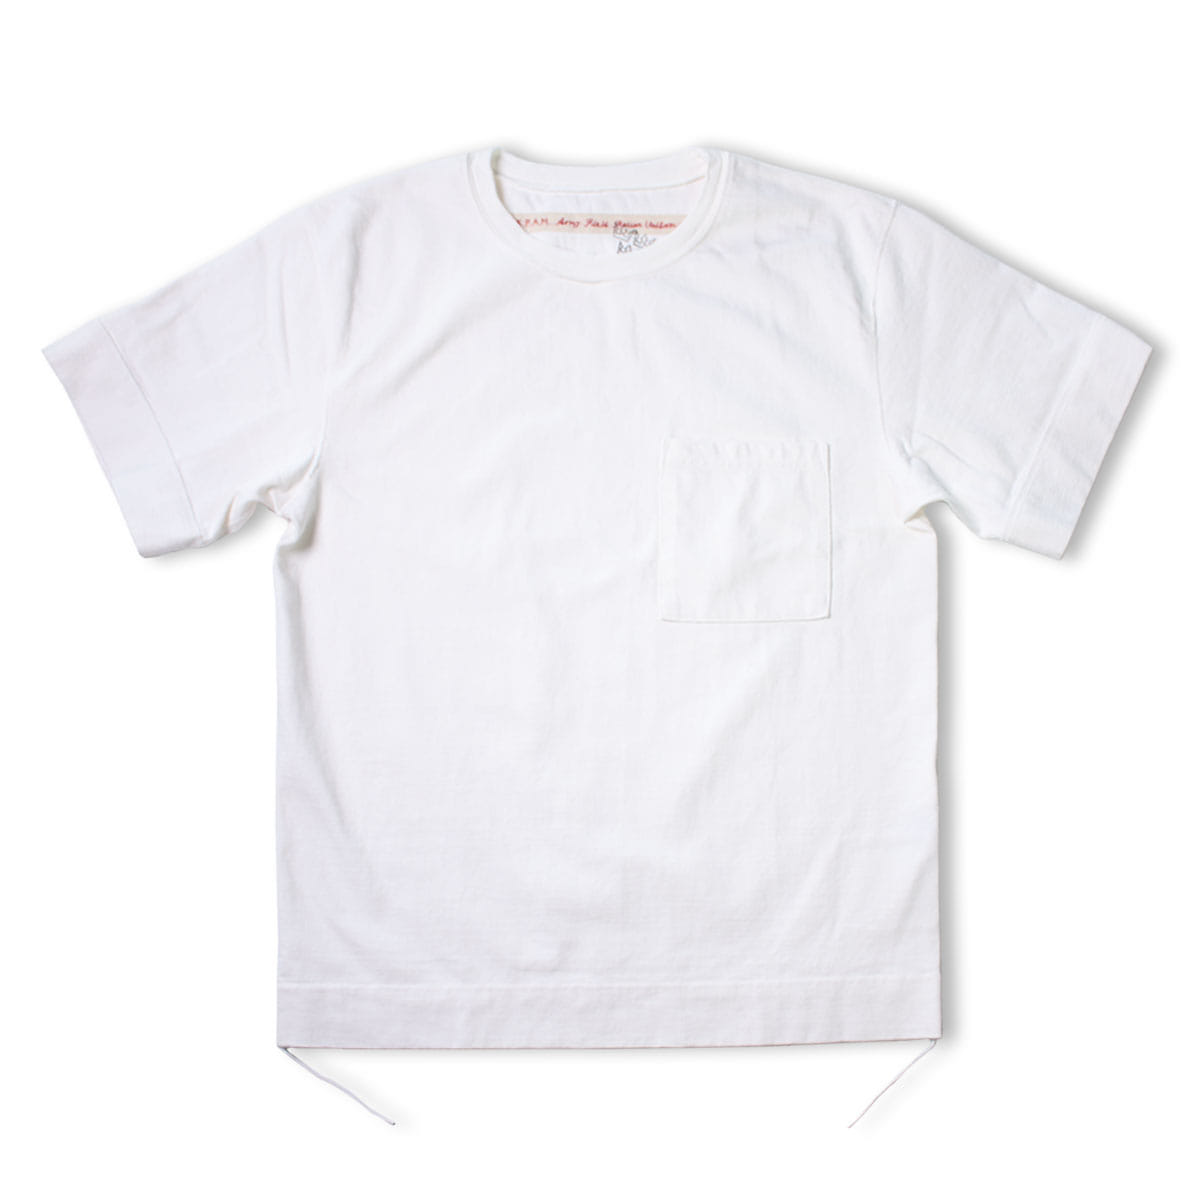 [KAPITAL] DI-PACK JERSEY ARMY PACK T 'WHITE'